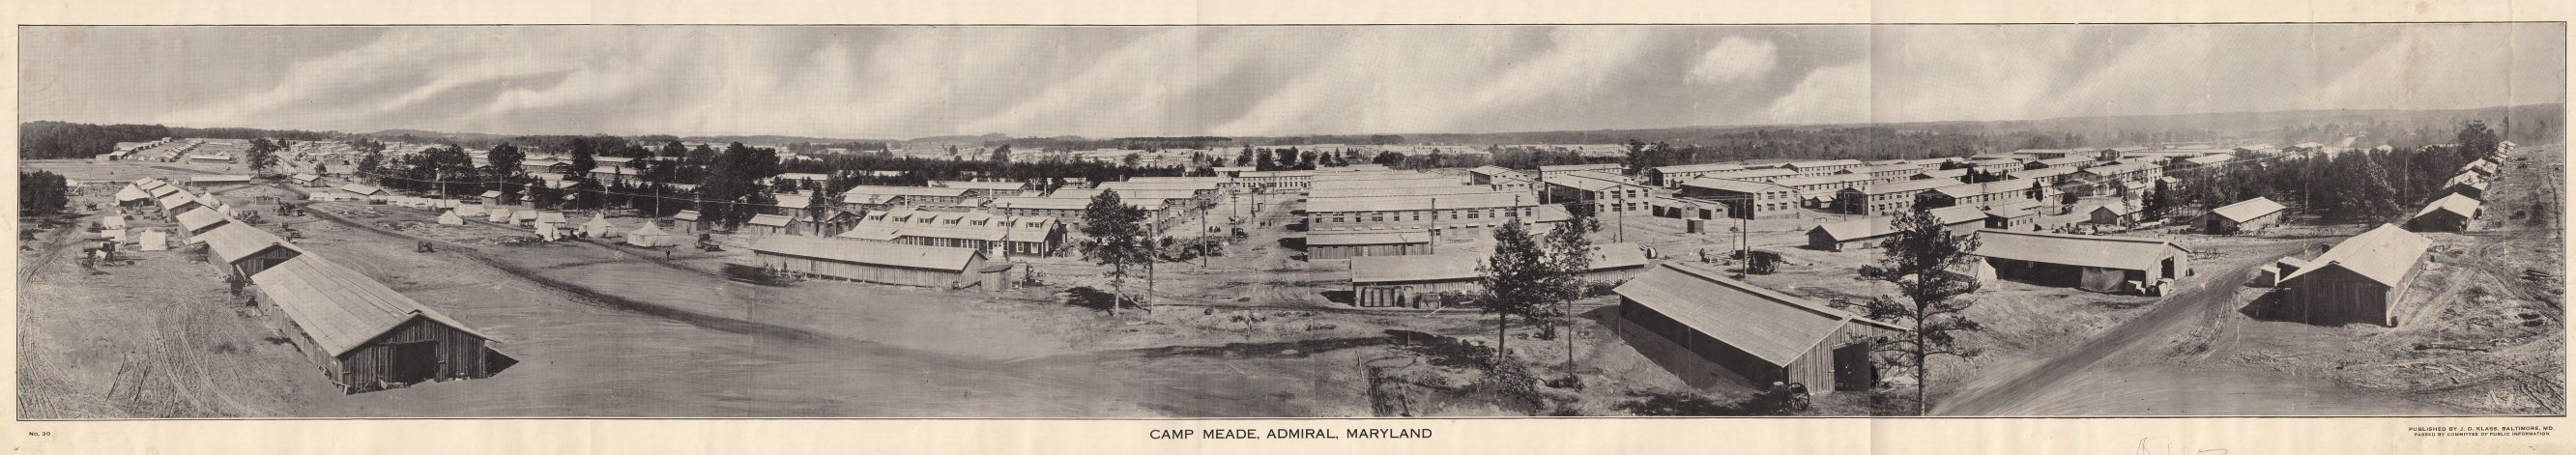 Panoramic Views of Camp Meade 1918 published by Klass